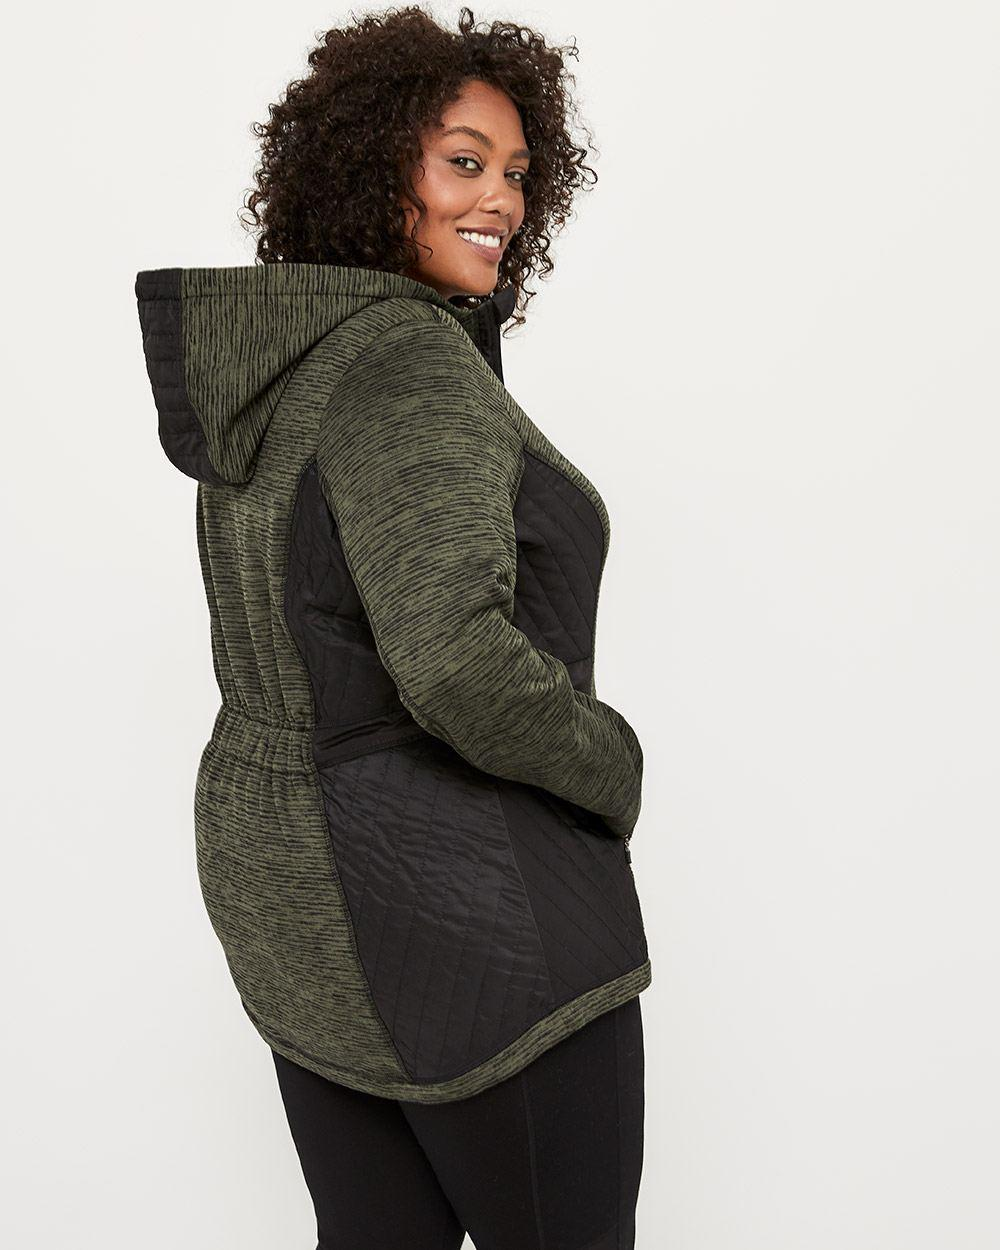 4f83dc633659a Lyst - Addition Elle Plus-size Hooded Jacket - Activezone in Black